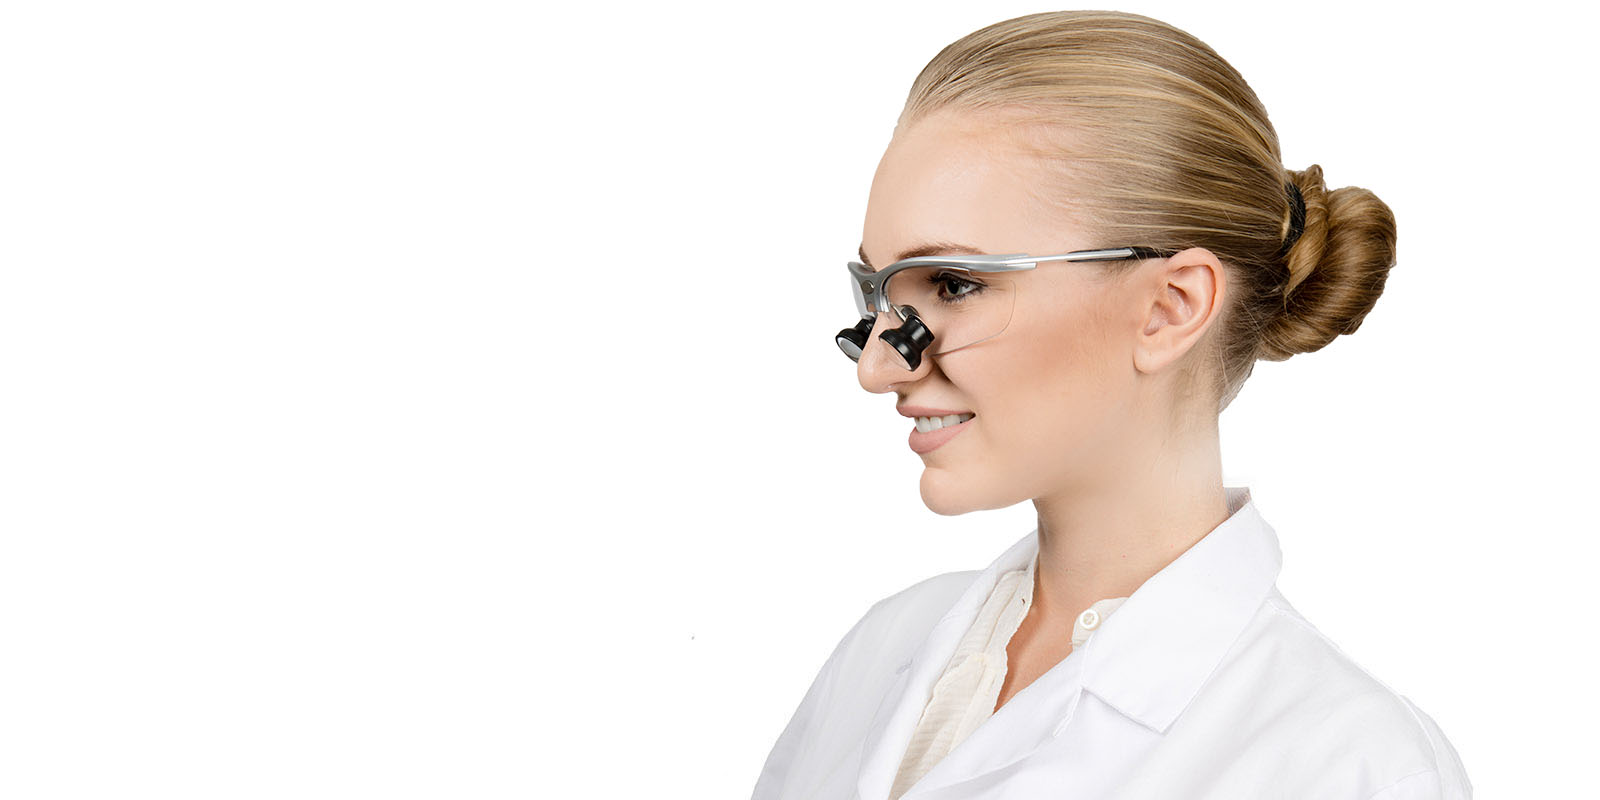 Best dental loupes and surgical loupes online is your dream loupes